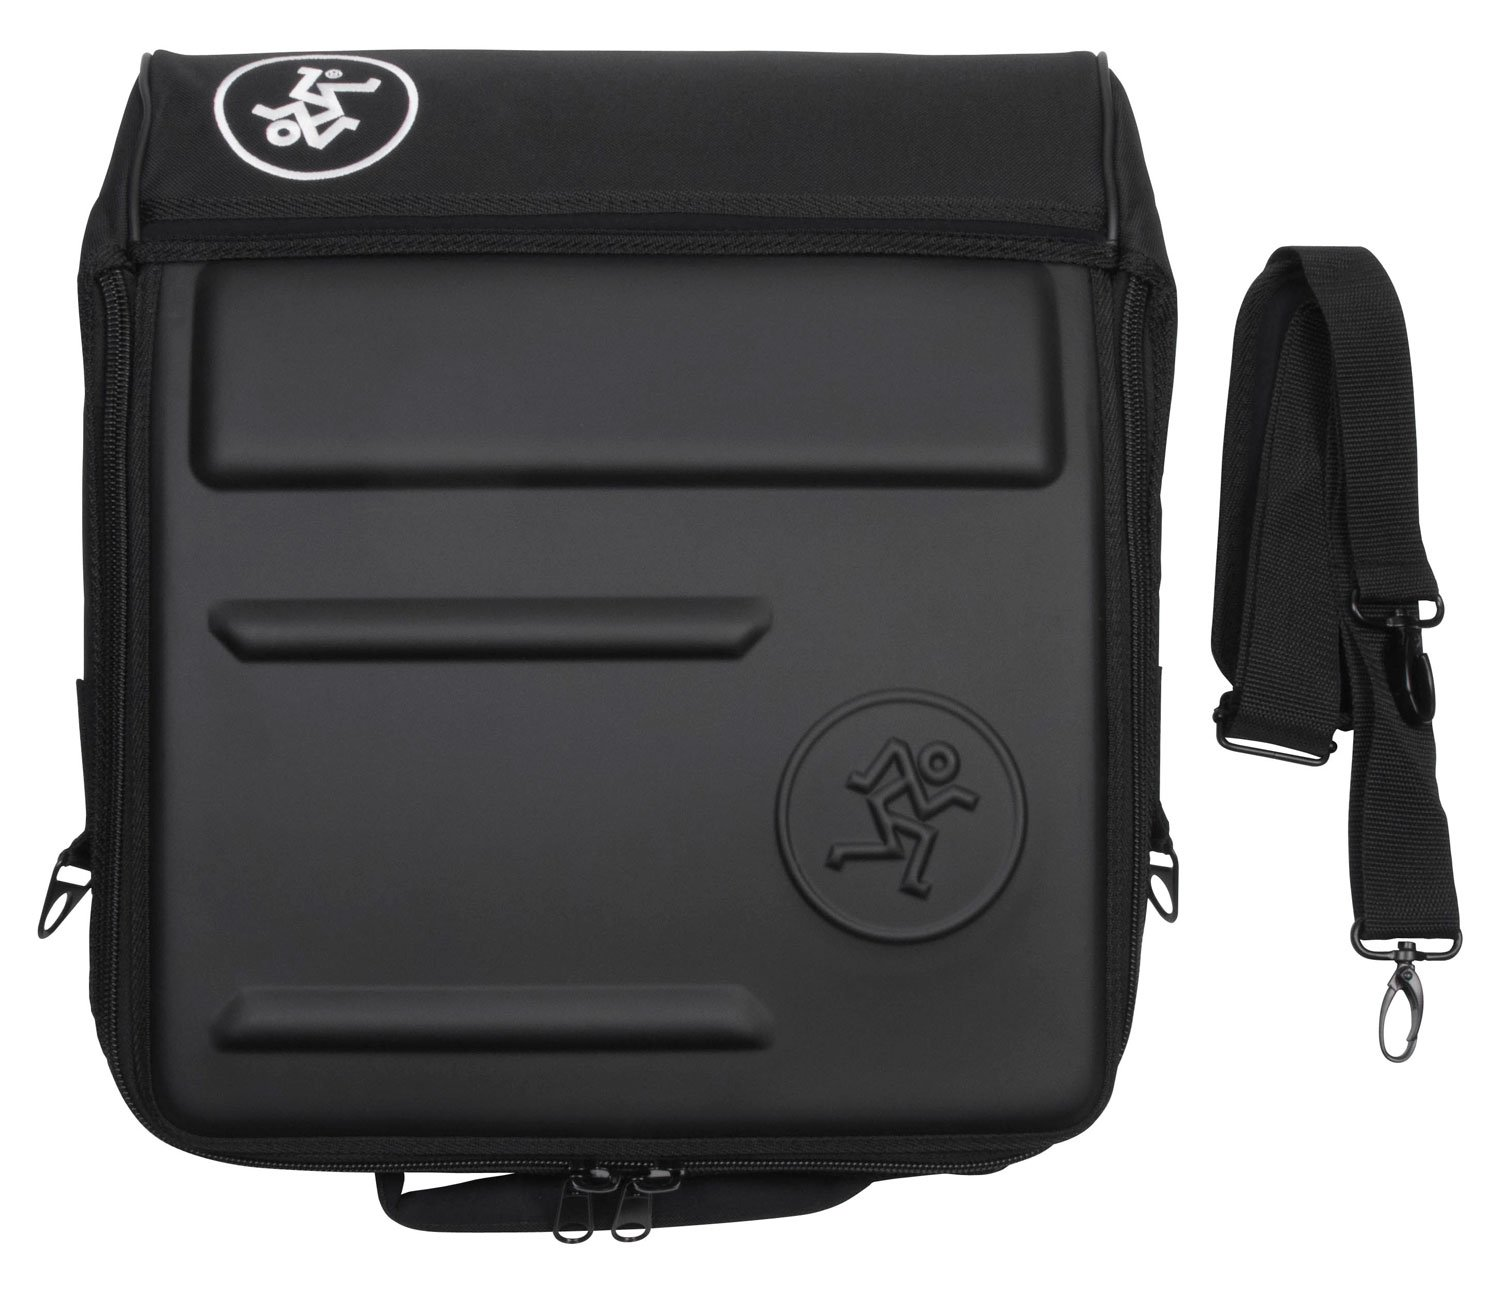 Mackie DL1608 Mixer Bag - Black by Mackie